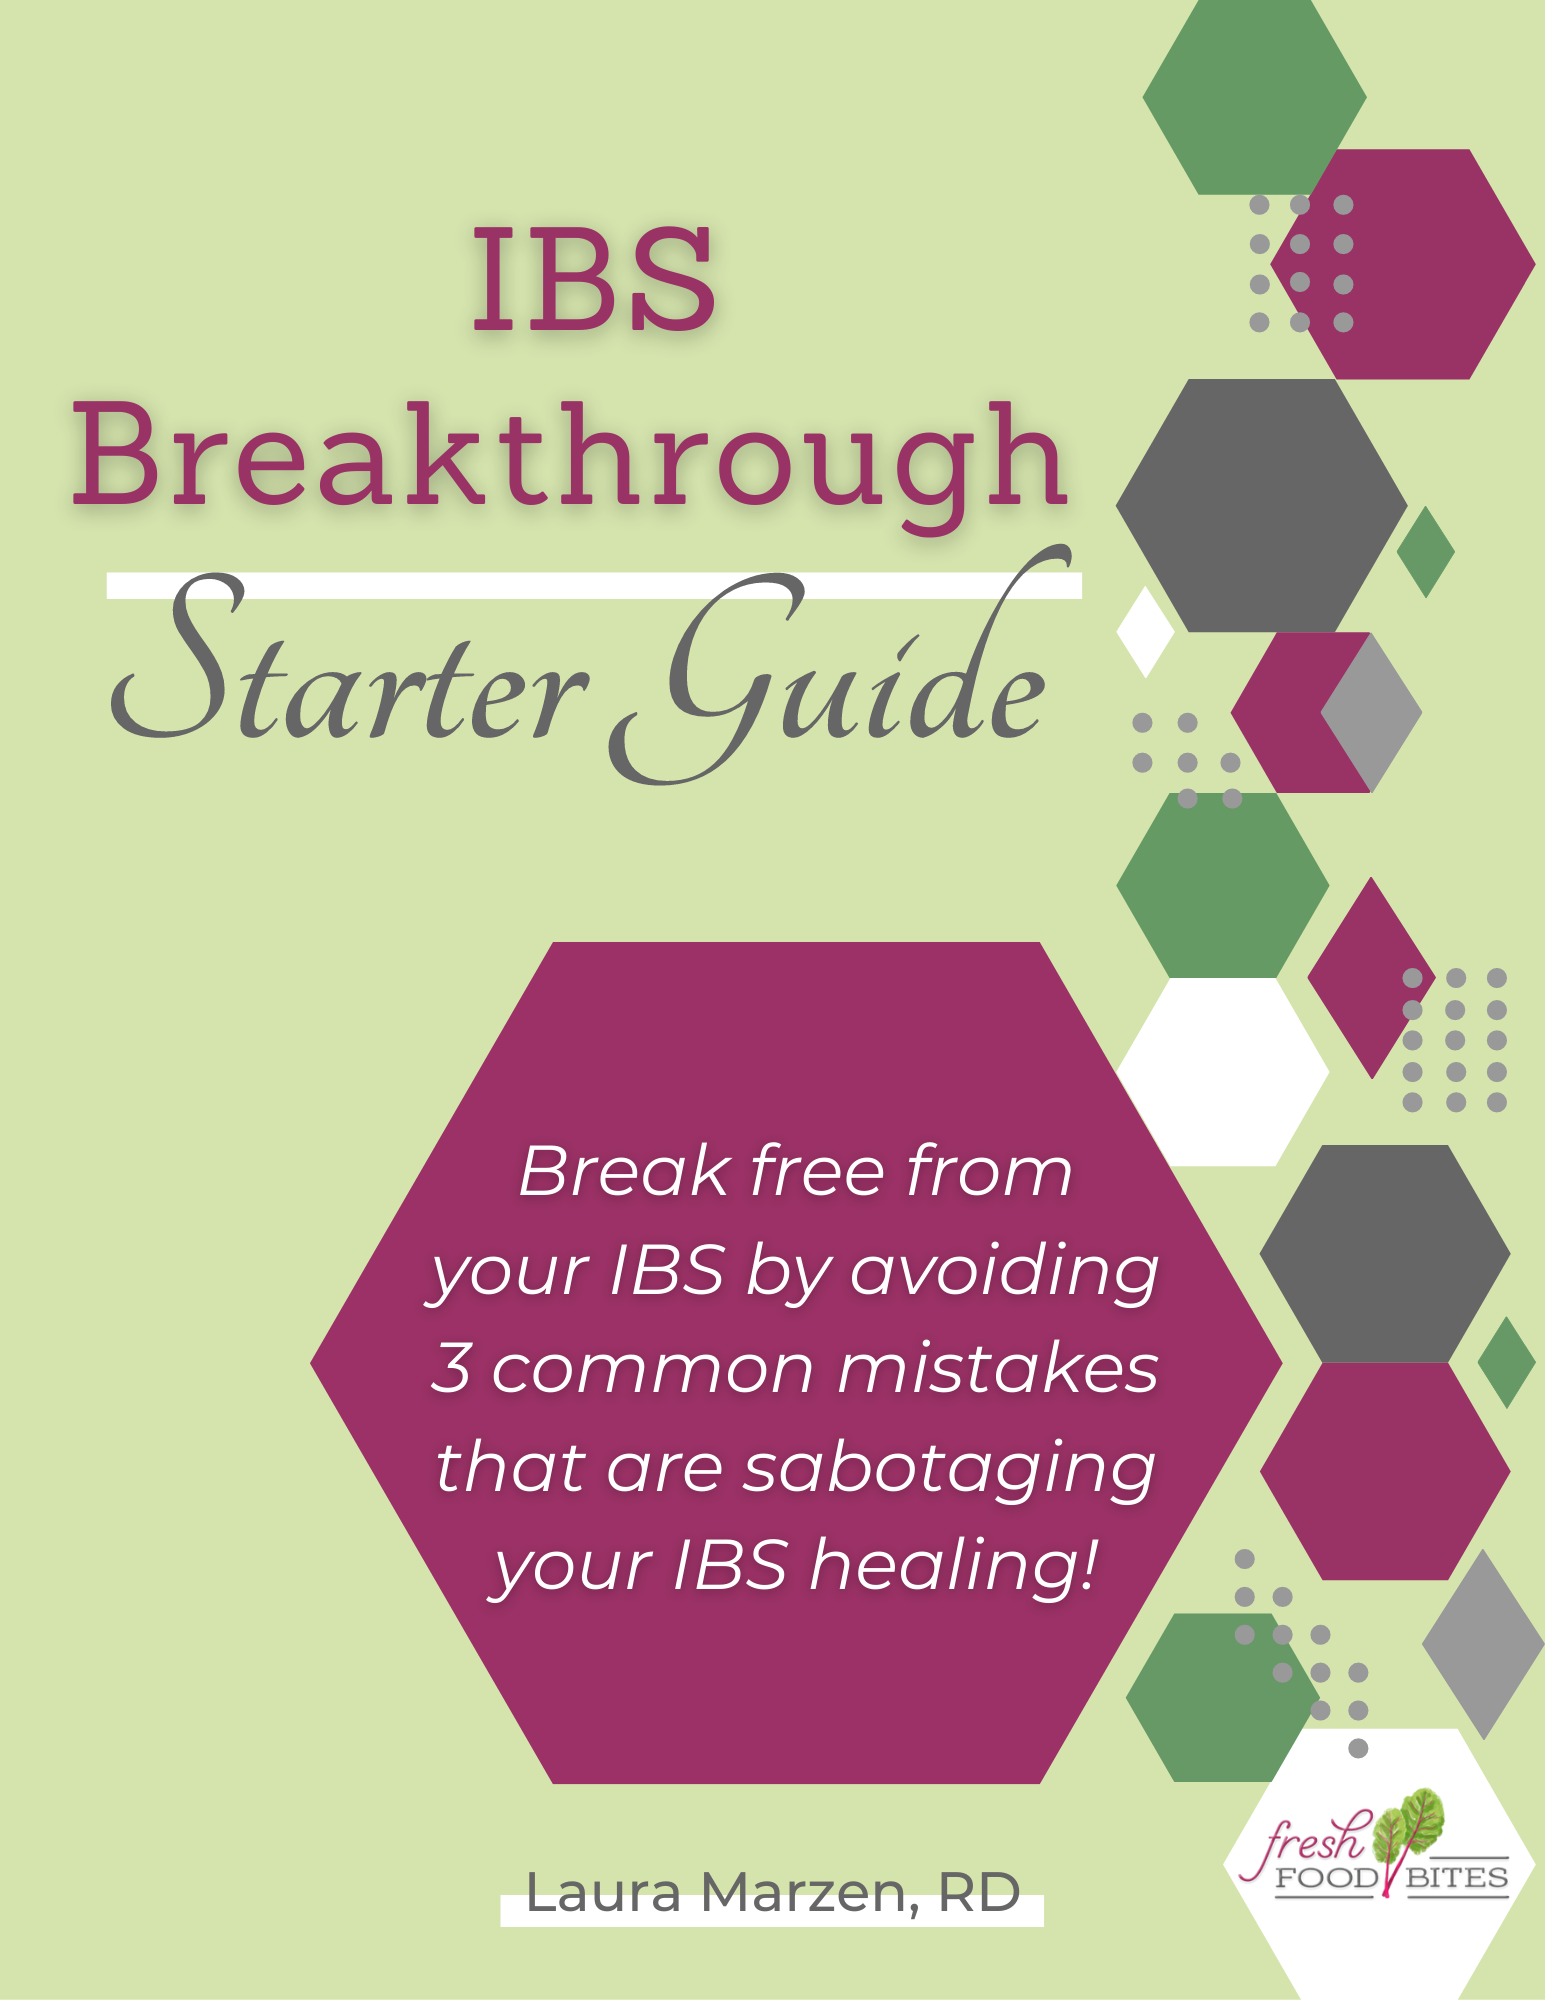 Discover the 3 common mistakes that are holding you back from getting lasting relief from your IBS with this IBS Breakthrough Starter Guide.